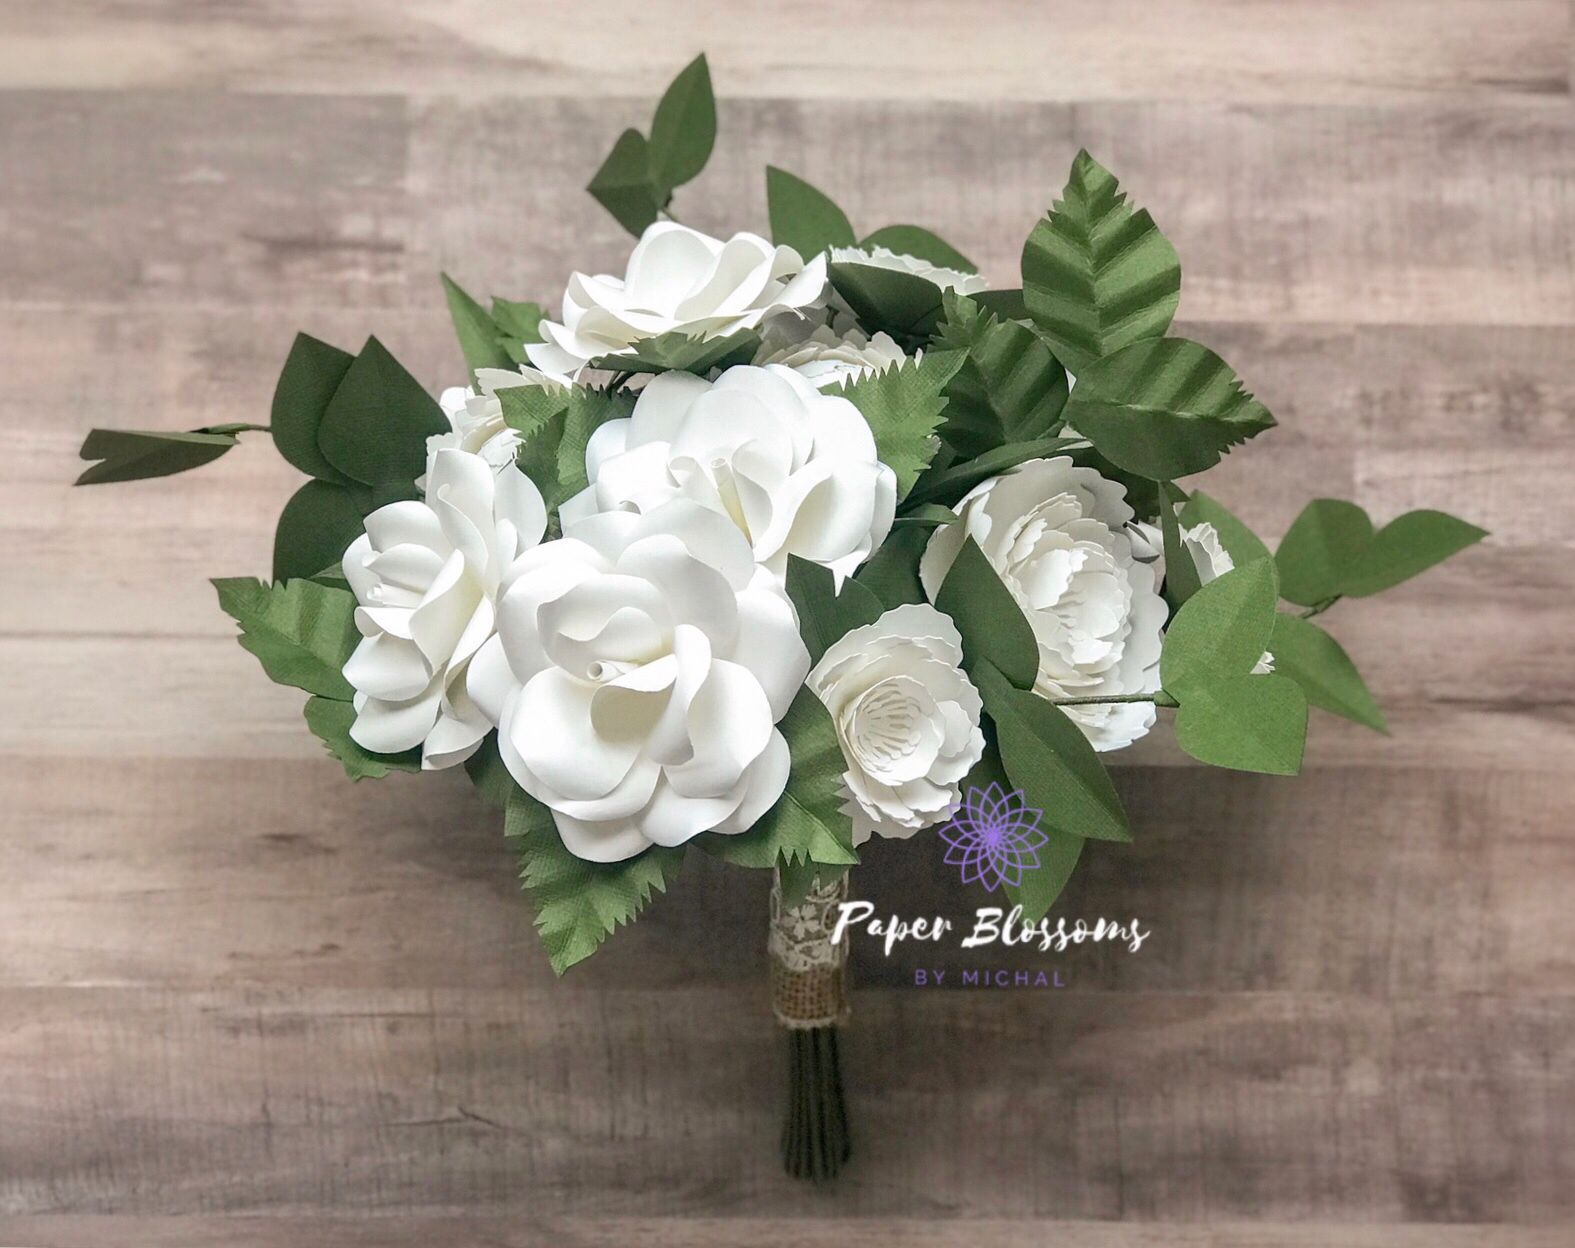 Rustic Wedding White Paper Flower Bouquet Paper Flowers Wedding Bouquet Paper Flower Bouquet Dried Flower Bouquet